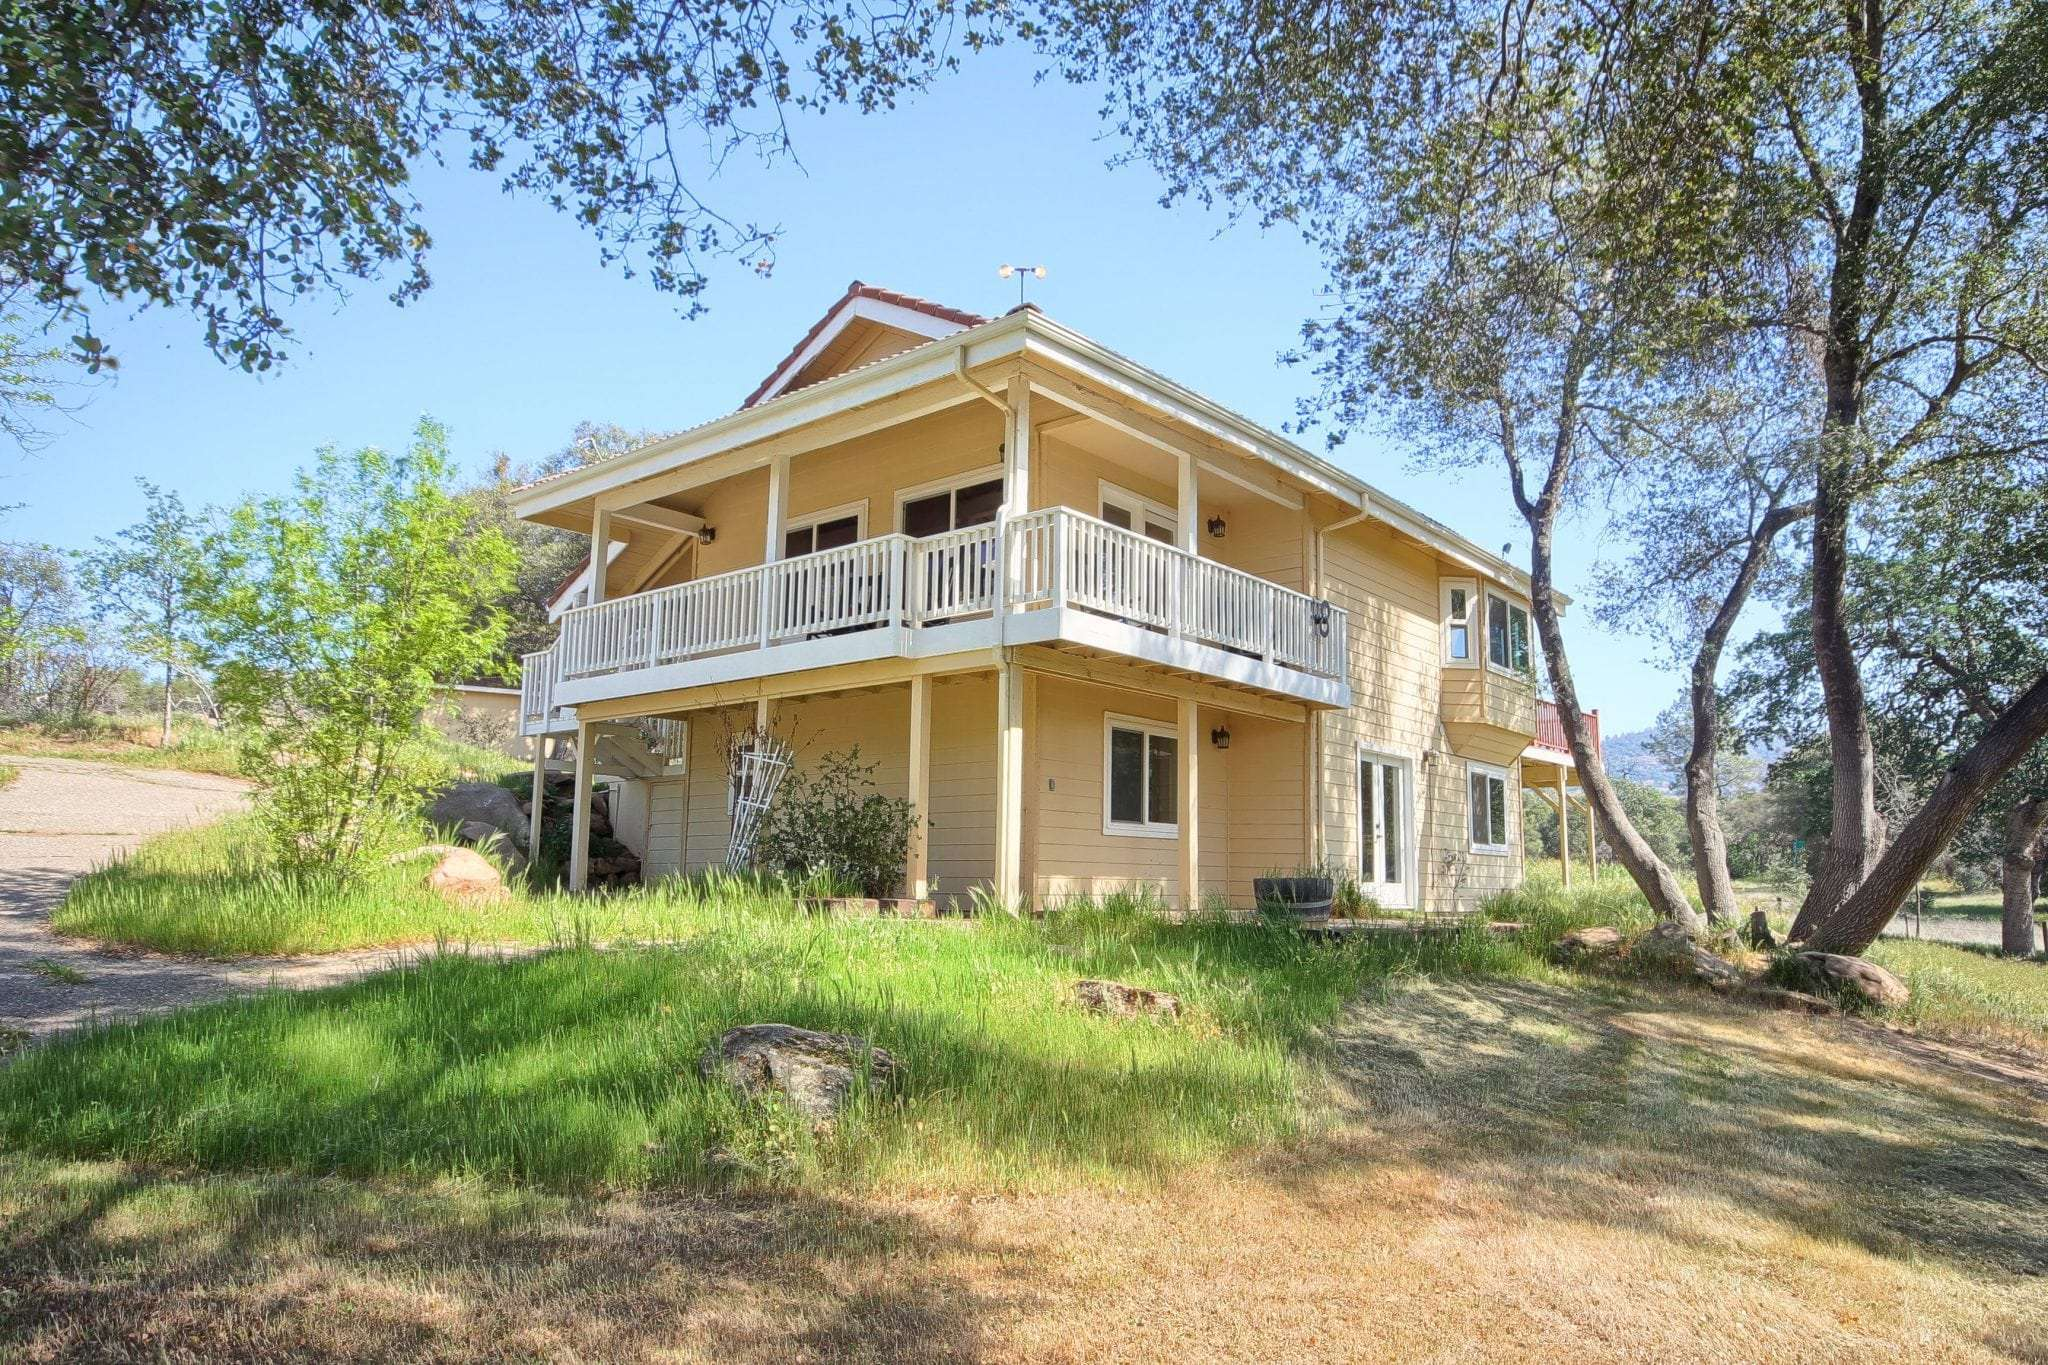 40 Ac. House, Barn, Guest Quarters and Grazing Land, Coarsegold